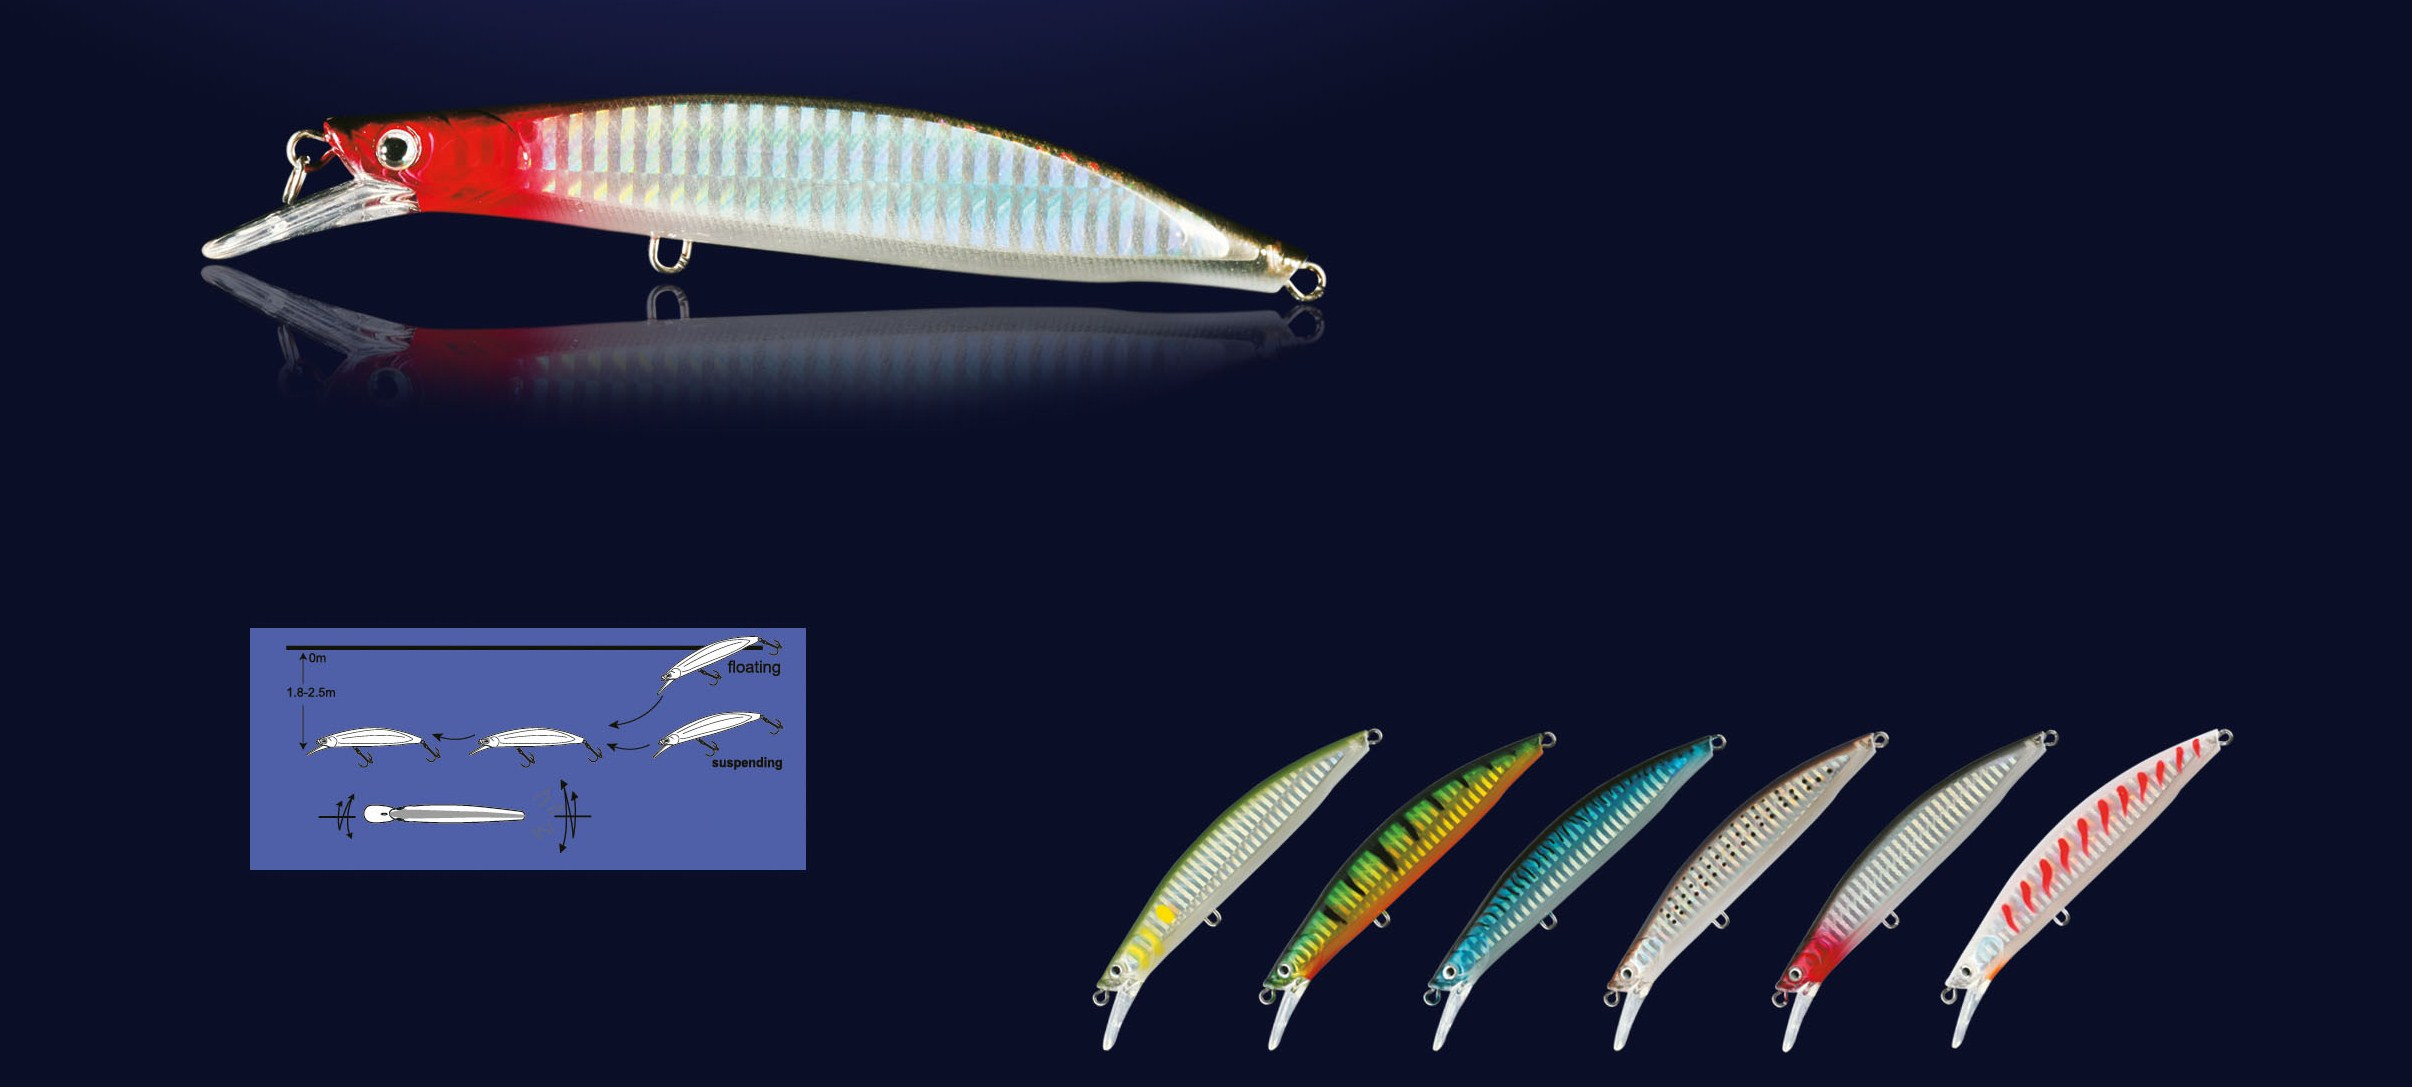 Nomura Salty Floating Lure